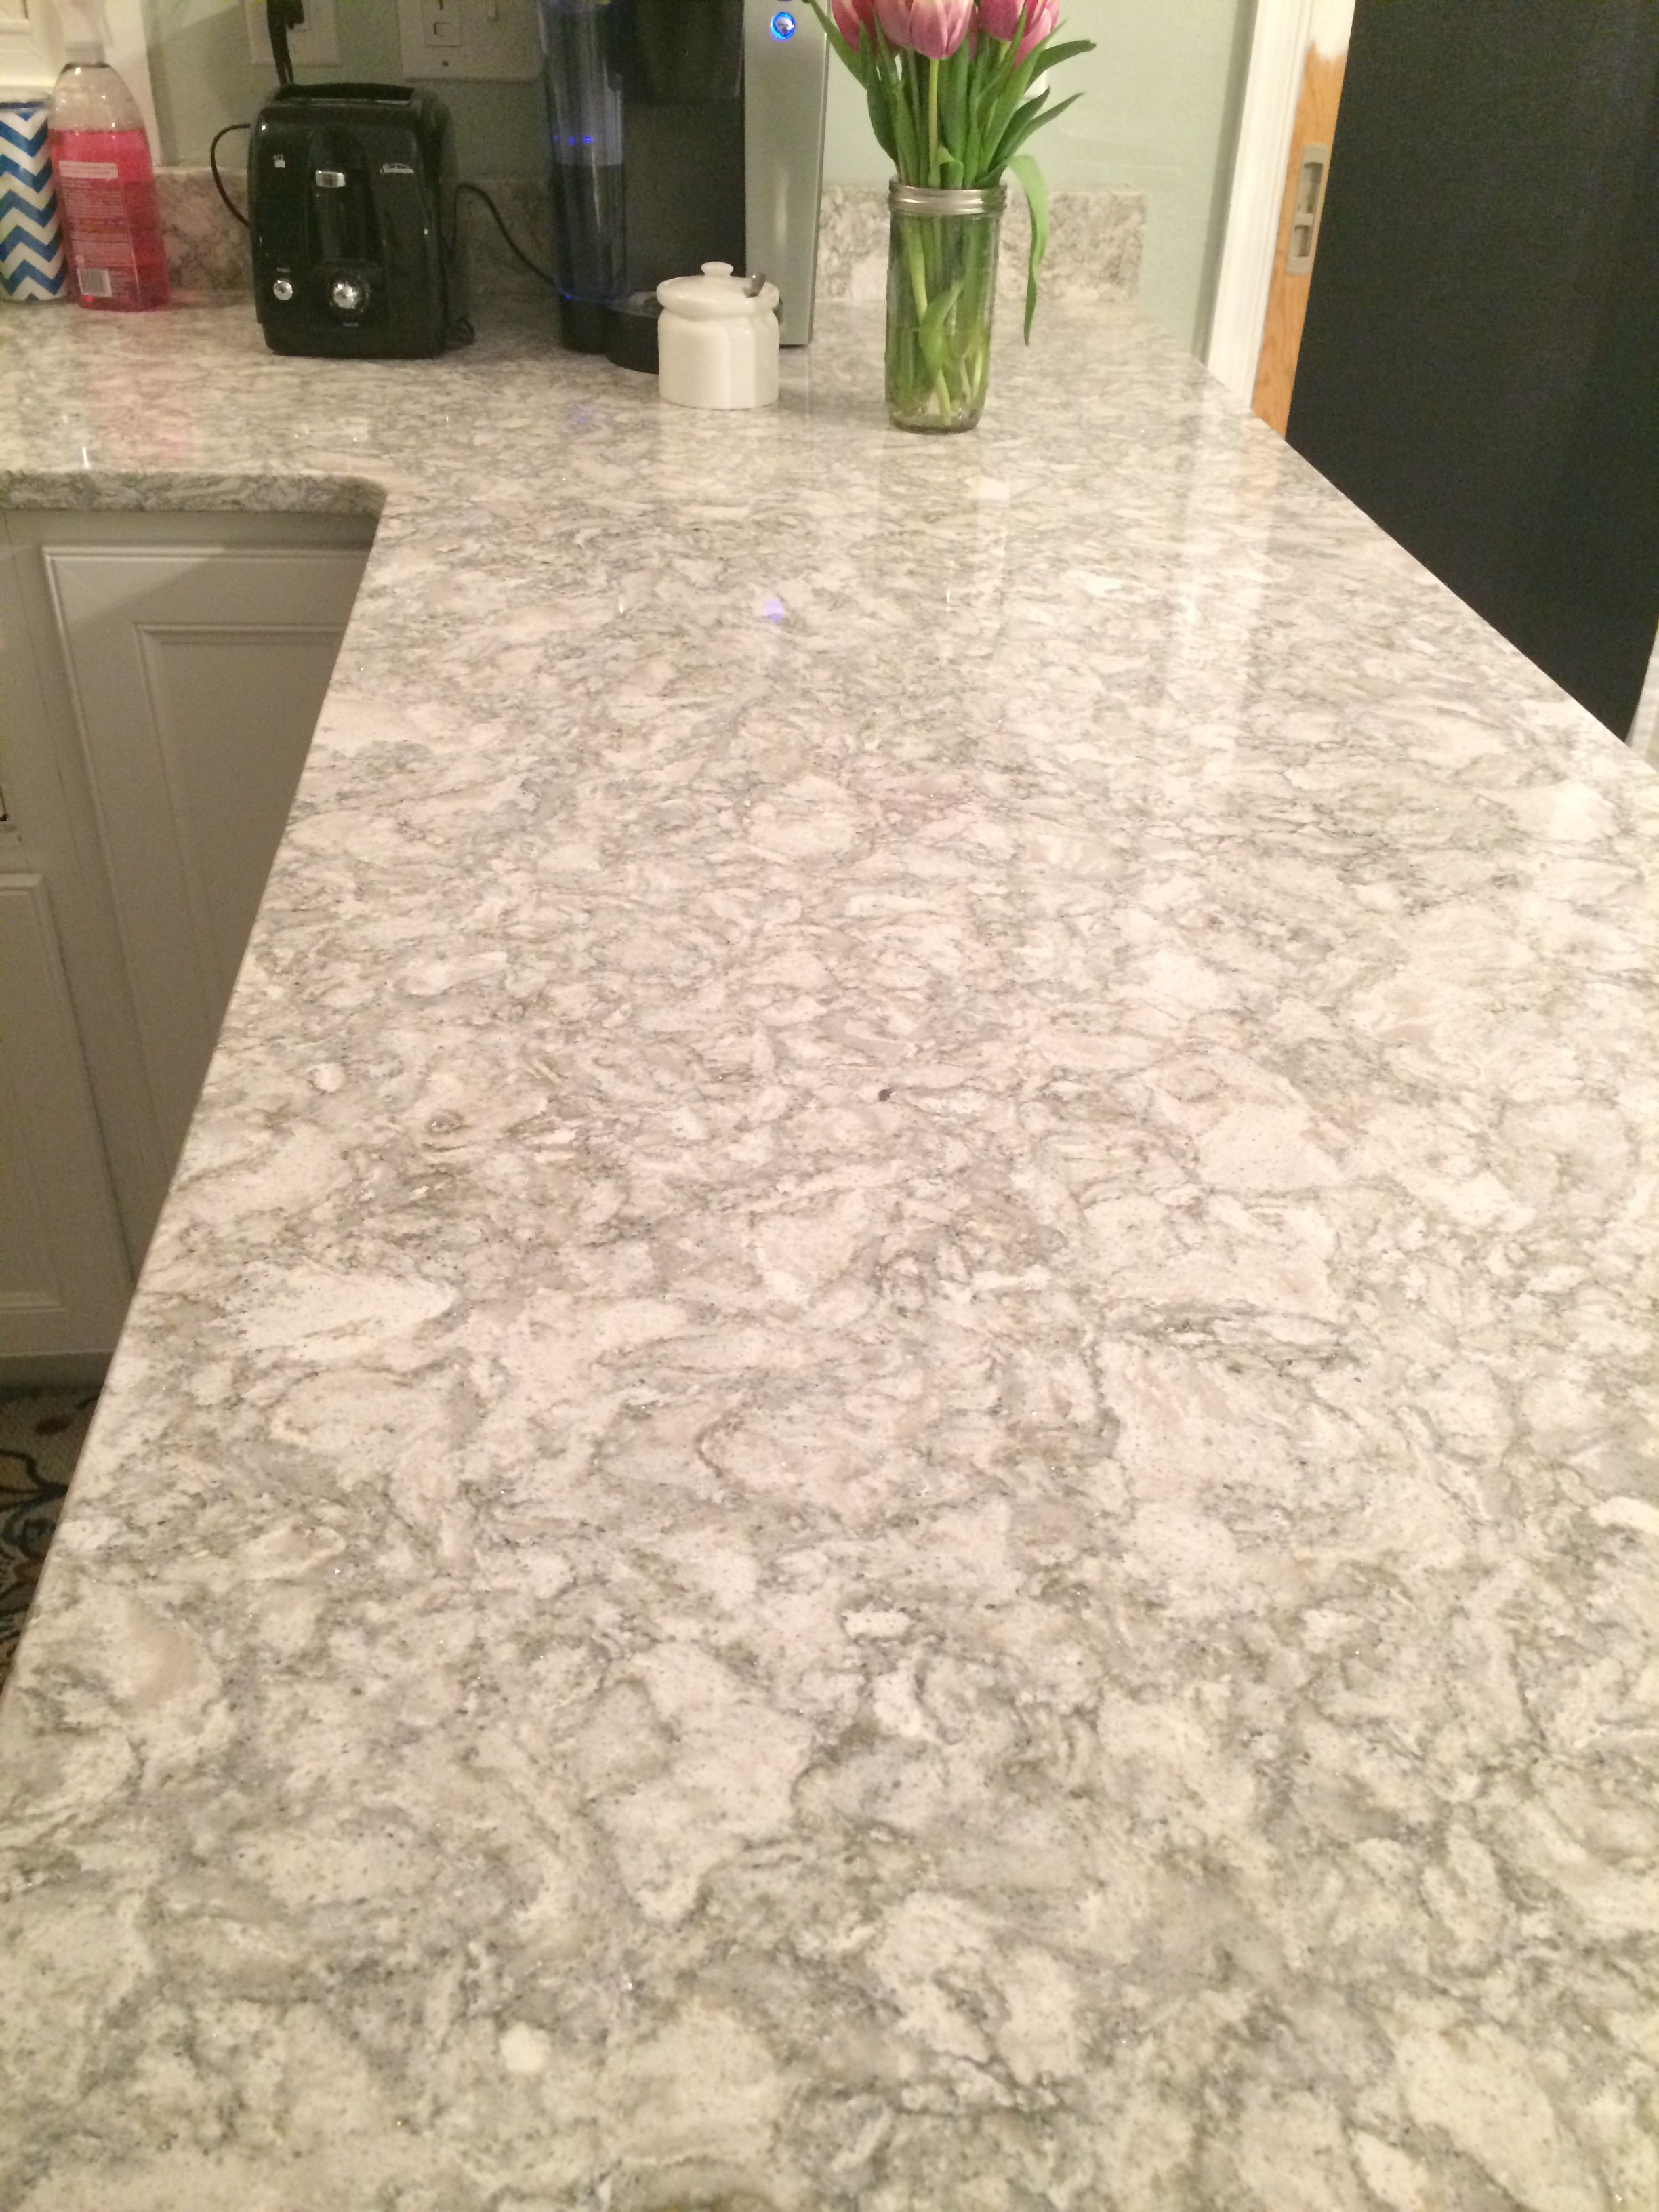 Cambria Berwyn Pictures Don T Do It Justice There Are Little Bits Of Sparkle That Don T Replacing Kitchen Countertops Quartz Kitchen Countertops Countertops